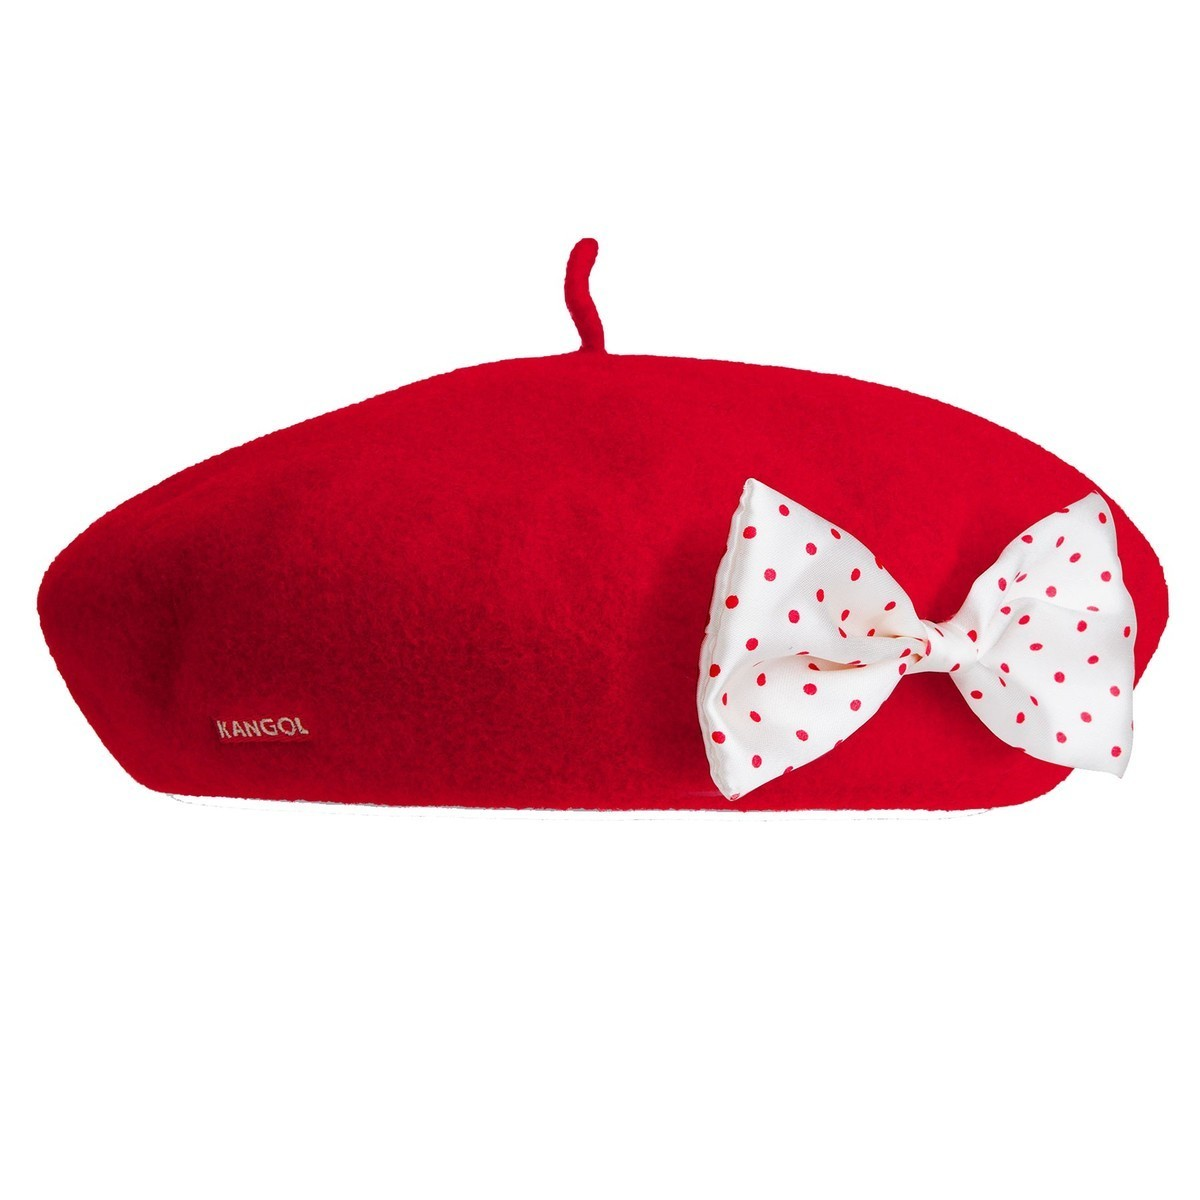 Kangol カンゴール for  Anglobasque Beret with Detachable Bows RED ベレー帽 帽子 RED